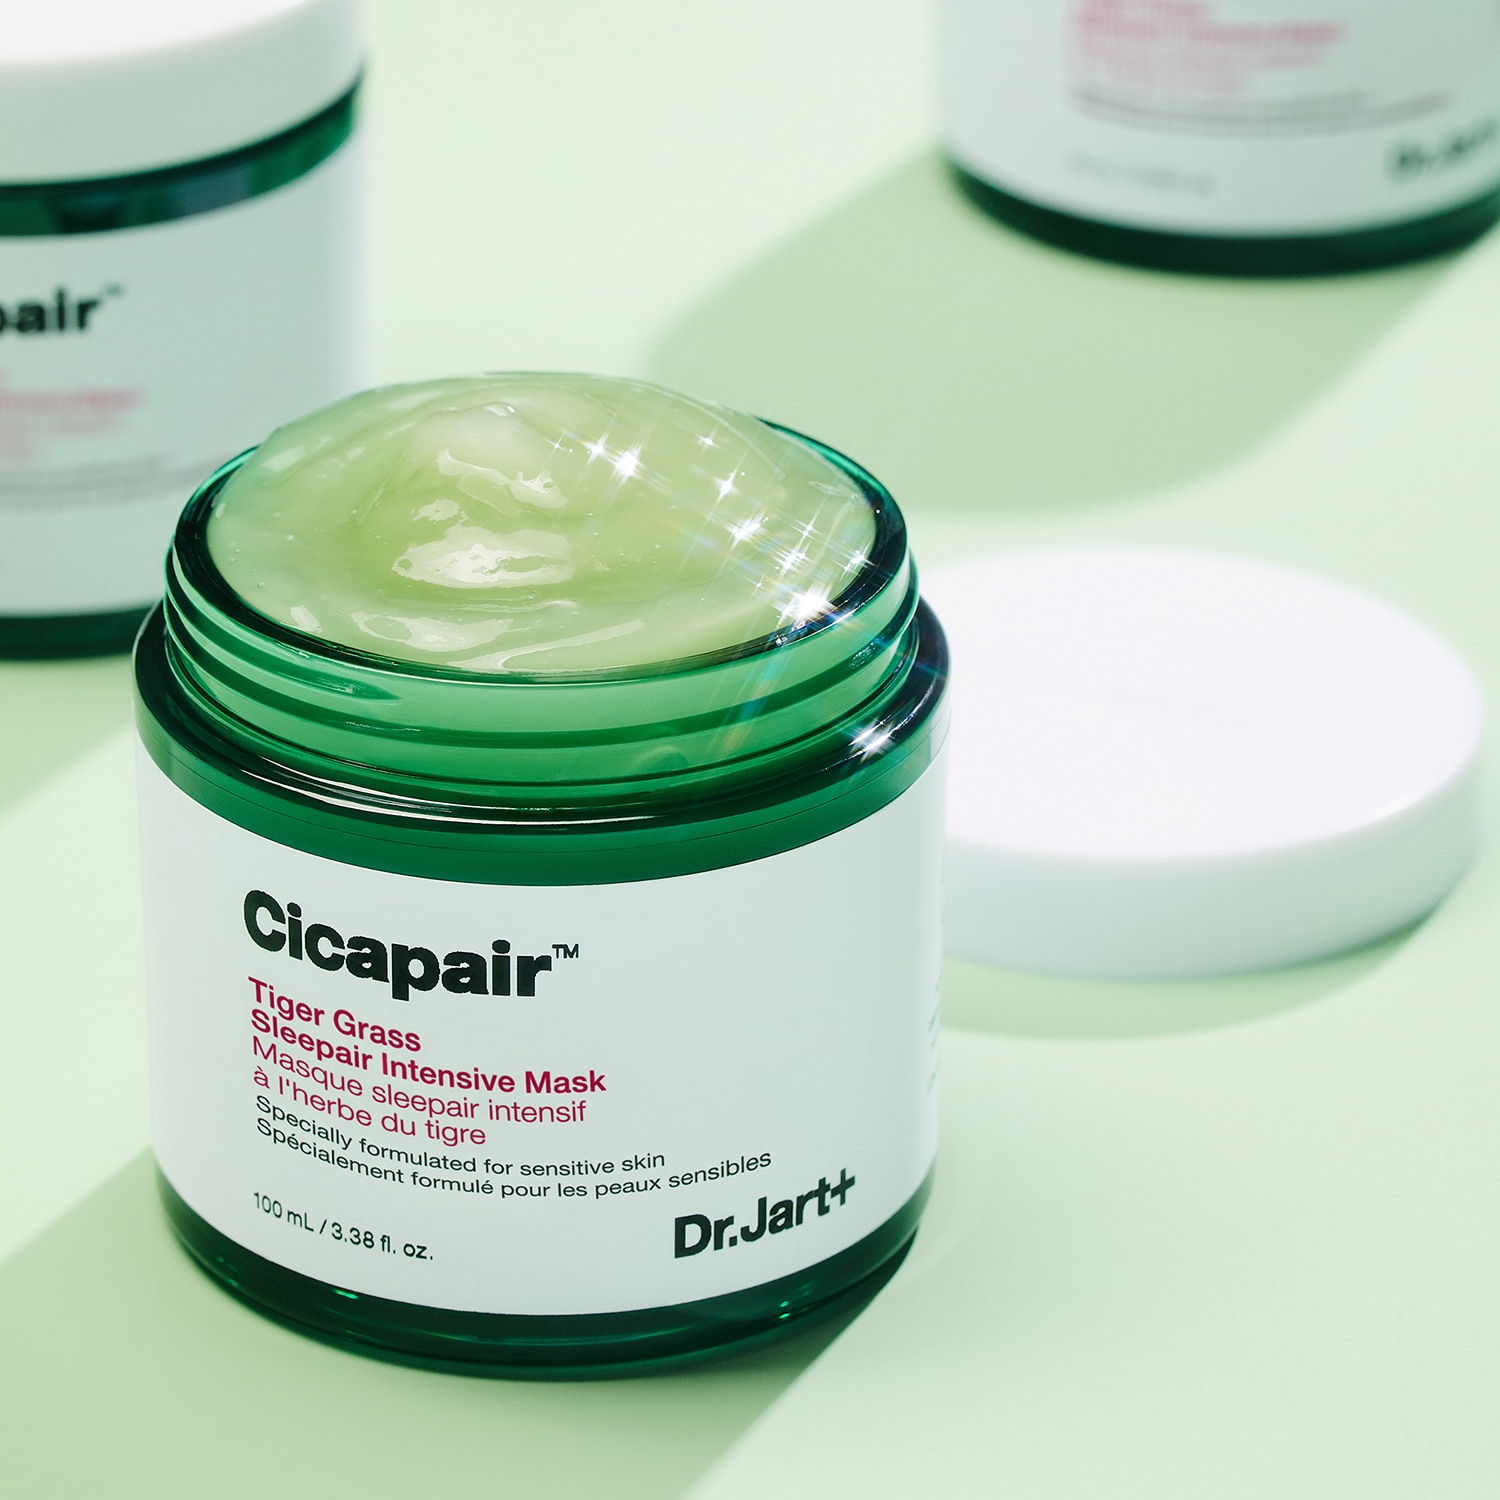 CICAPAIR™ TIGER GRASS SLEEPAIR INTENSIVE MASK (MASCARILLA)